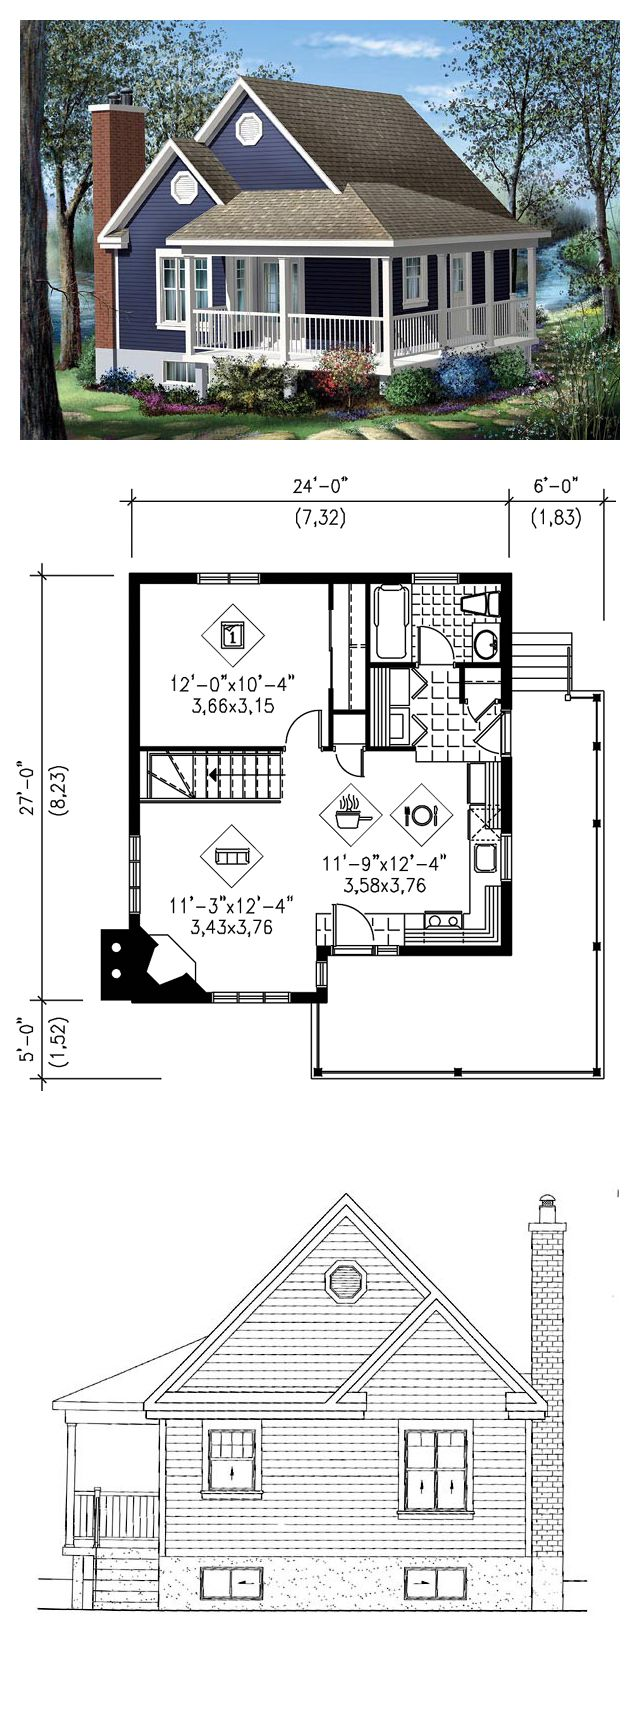 tiny micro house plan 49824 total living area 613 sq ft - Large Living Room House Plans